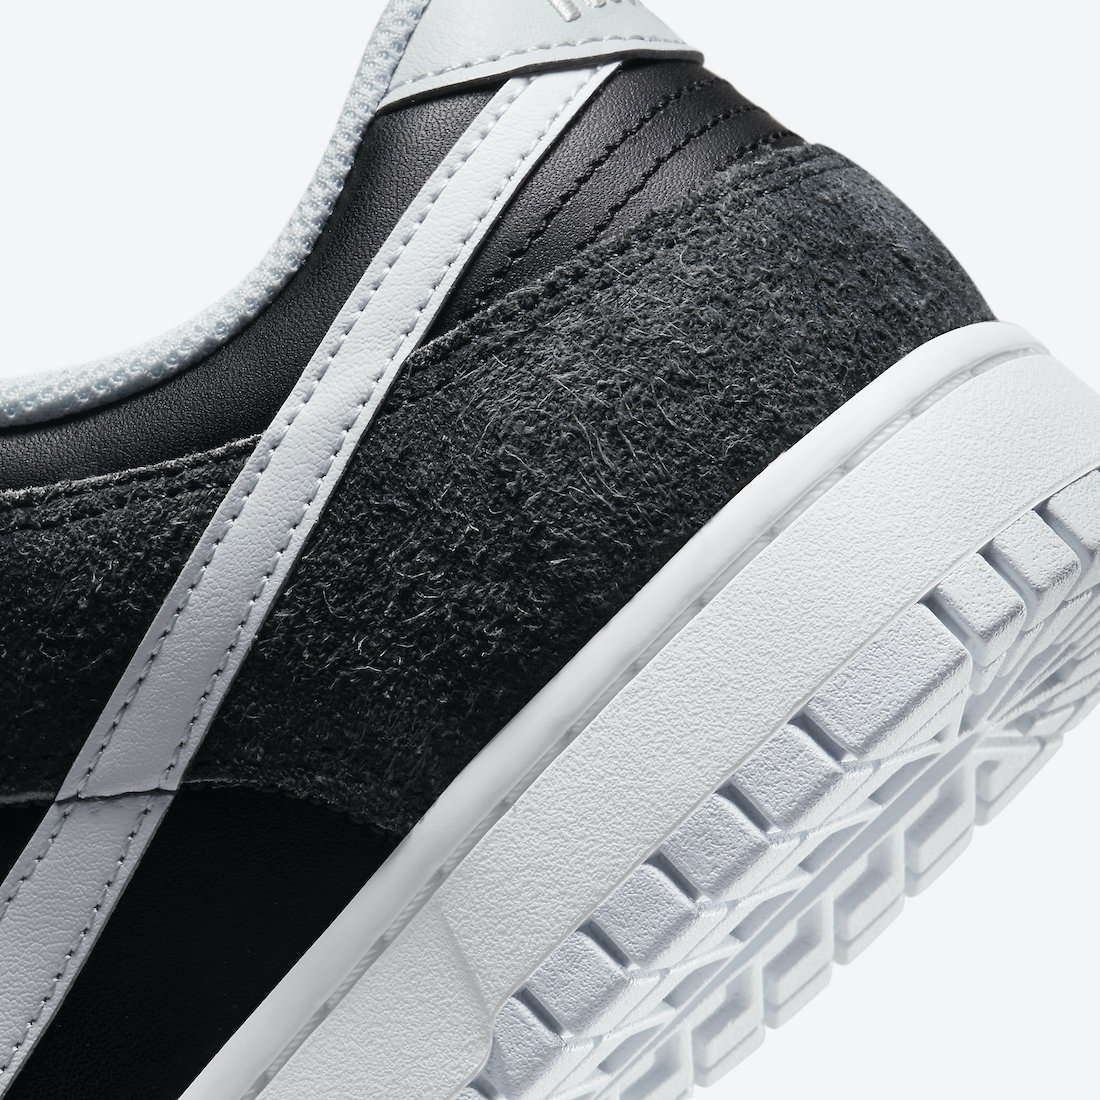 Nike-Dunk-Low-Animal-Black-DH7913-001-Release-Date-7